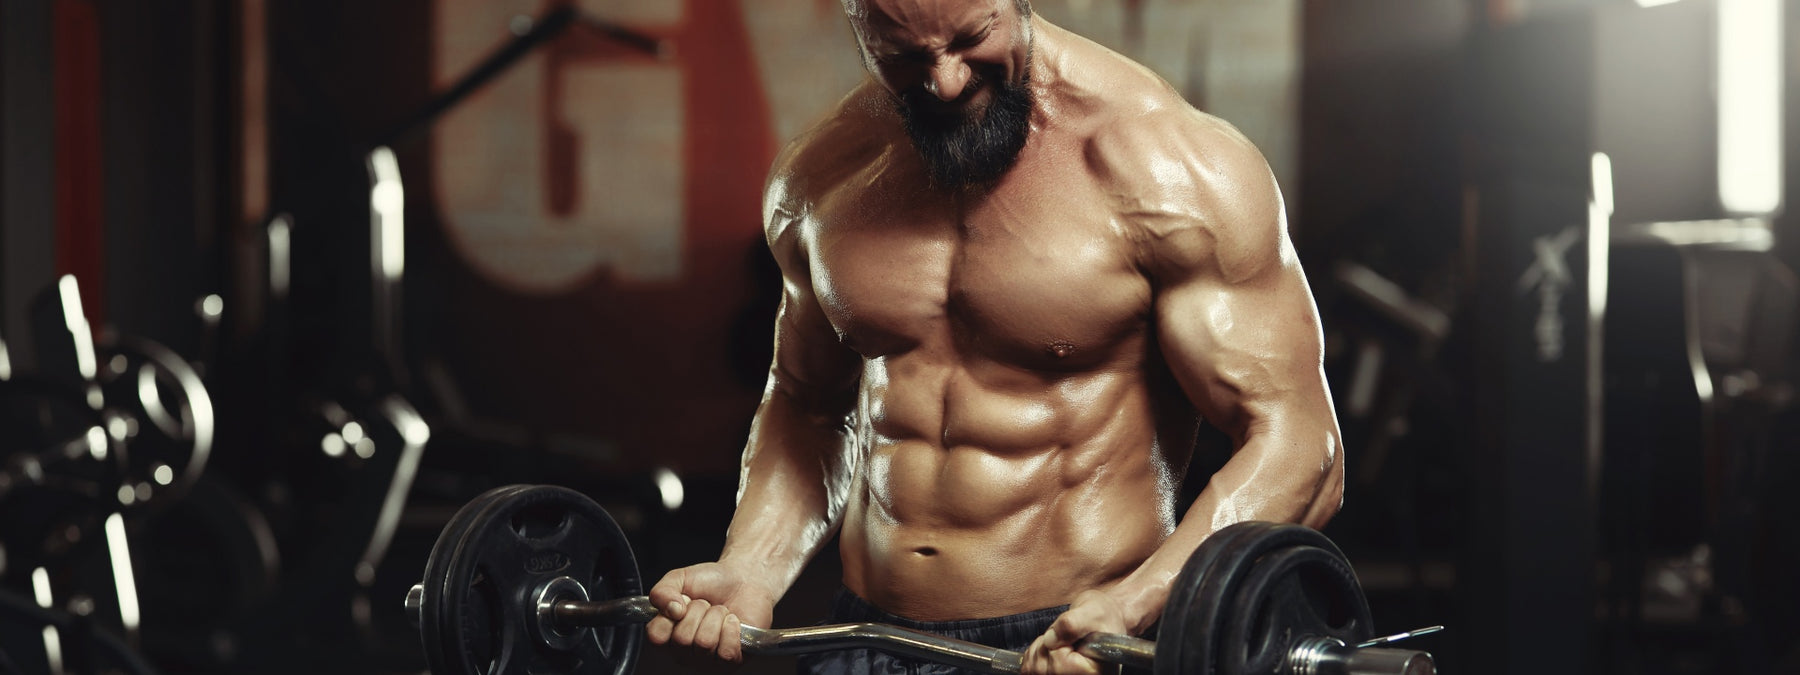 Power Beast Program: 3 Stage Powerbuilding Workout